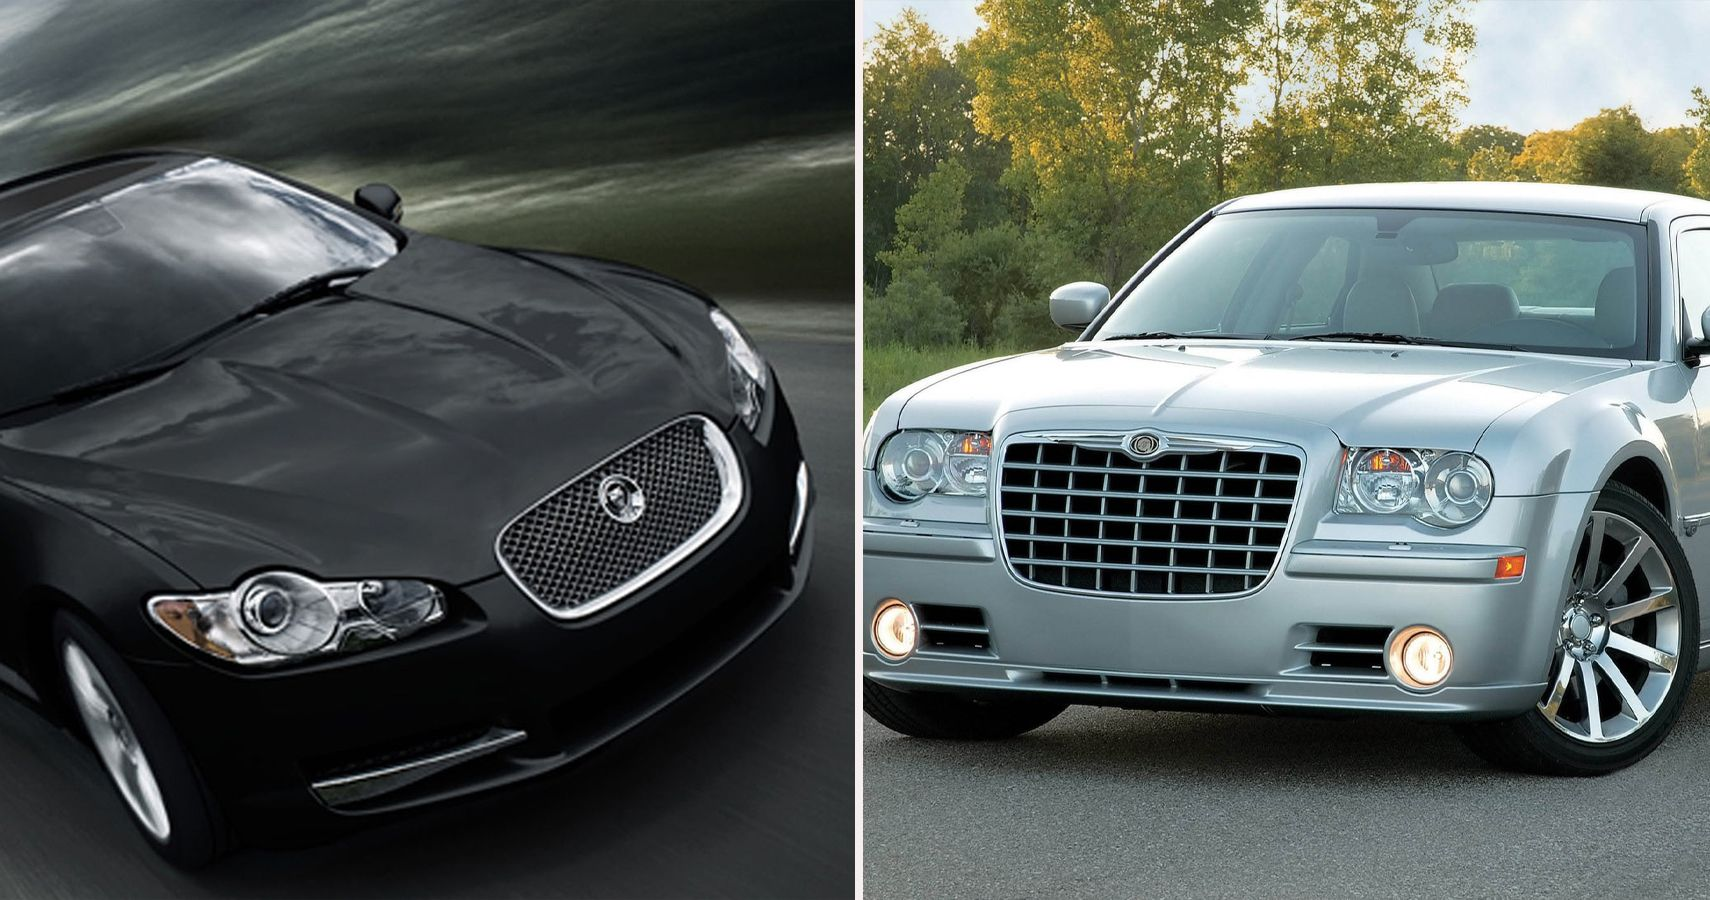 5 Incredibly Fast Cars For Under $10,000 (& 5 That Aren't